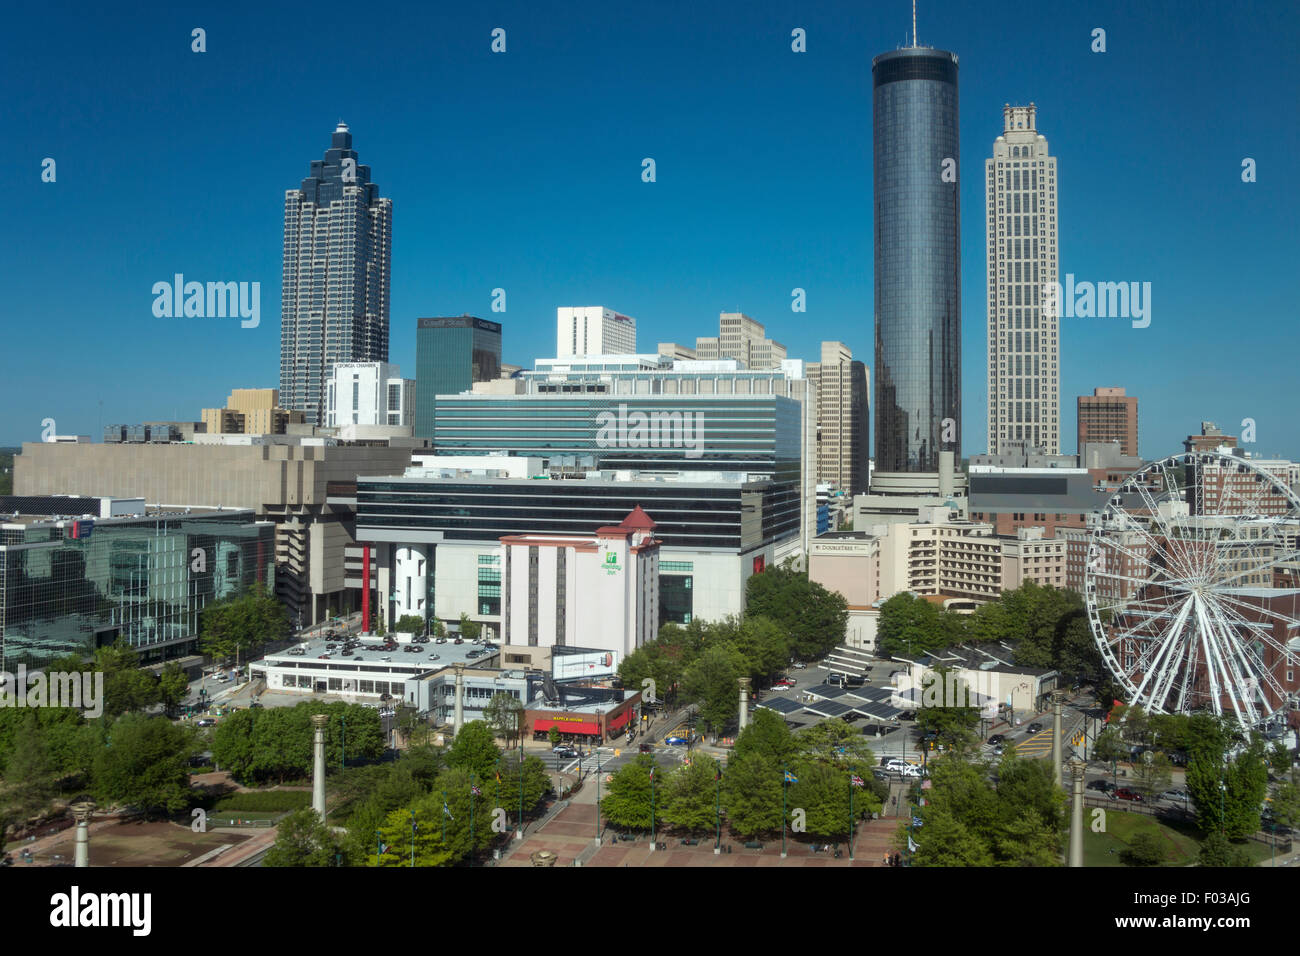 SKYVIEW FERRIS WHEEL CENTENNIAL OLYMPIC PARK DOWNTOWN SKYLINE ATLANTA GEORGIA USA - Stock Image